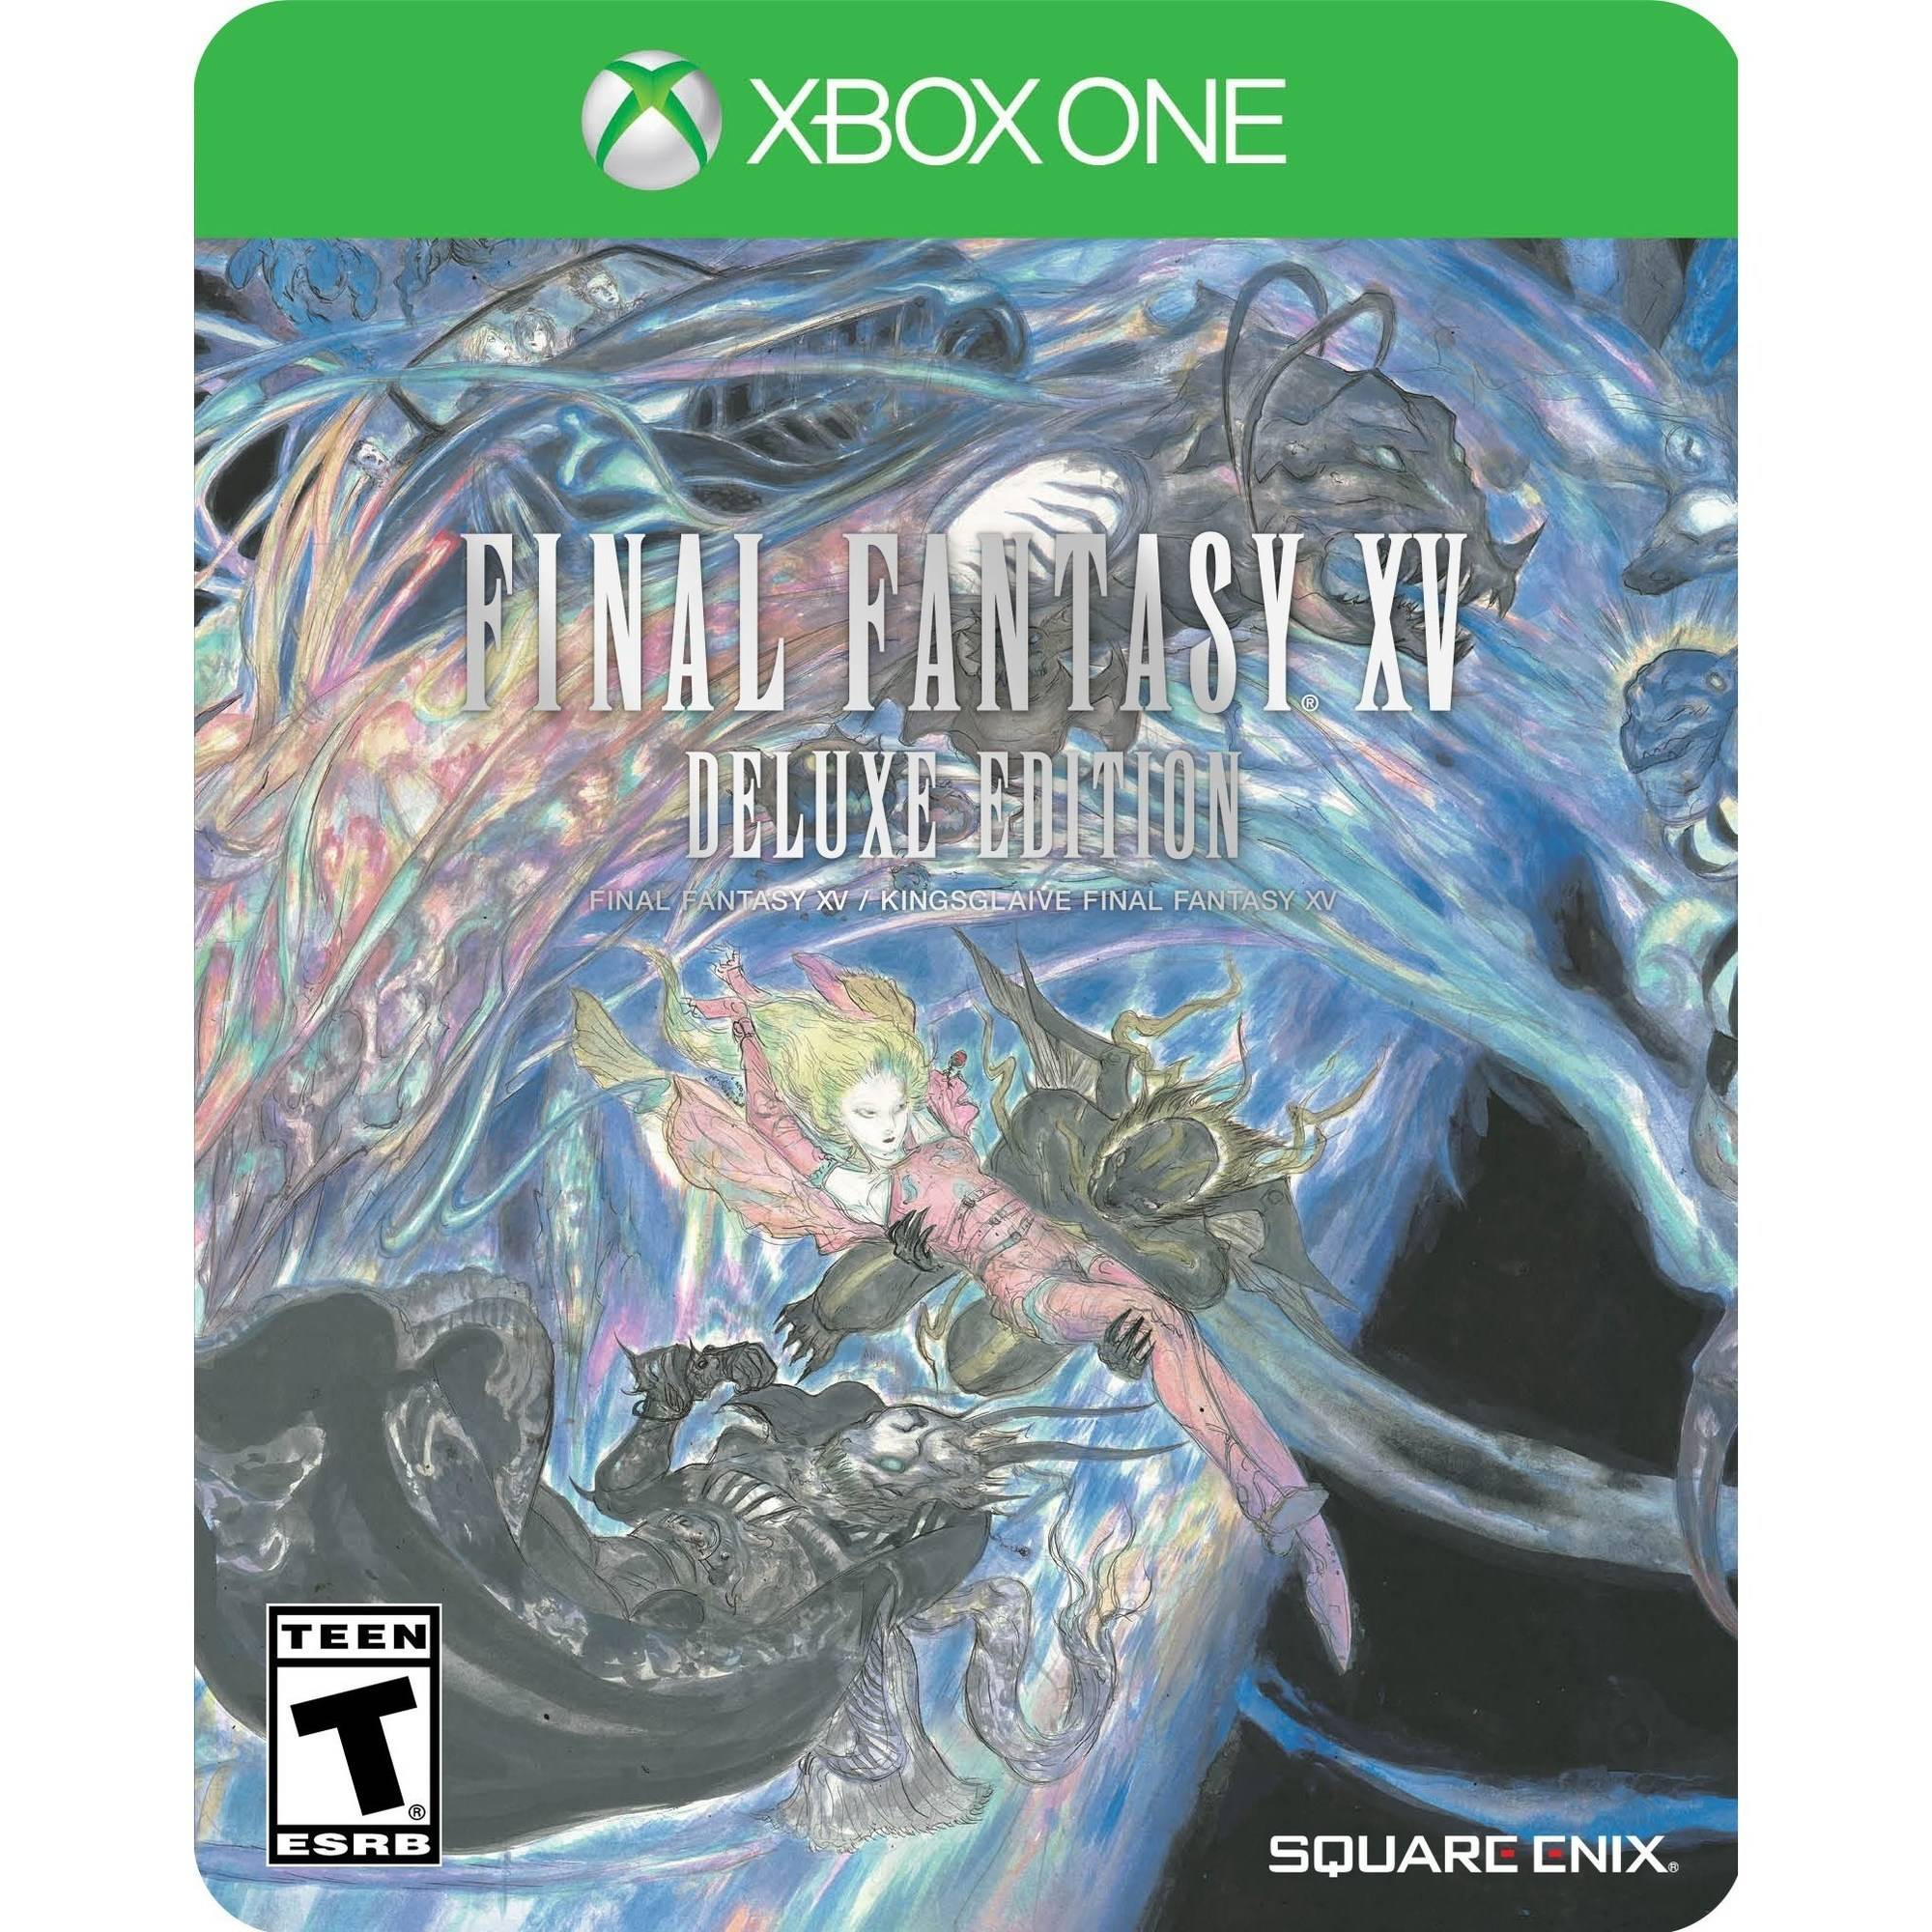 FINAL FANTASY XV Deluxe Edition (Xbox One) Square Enix, 662248918204